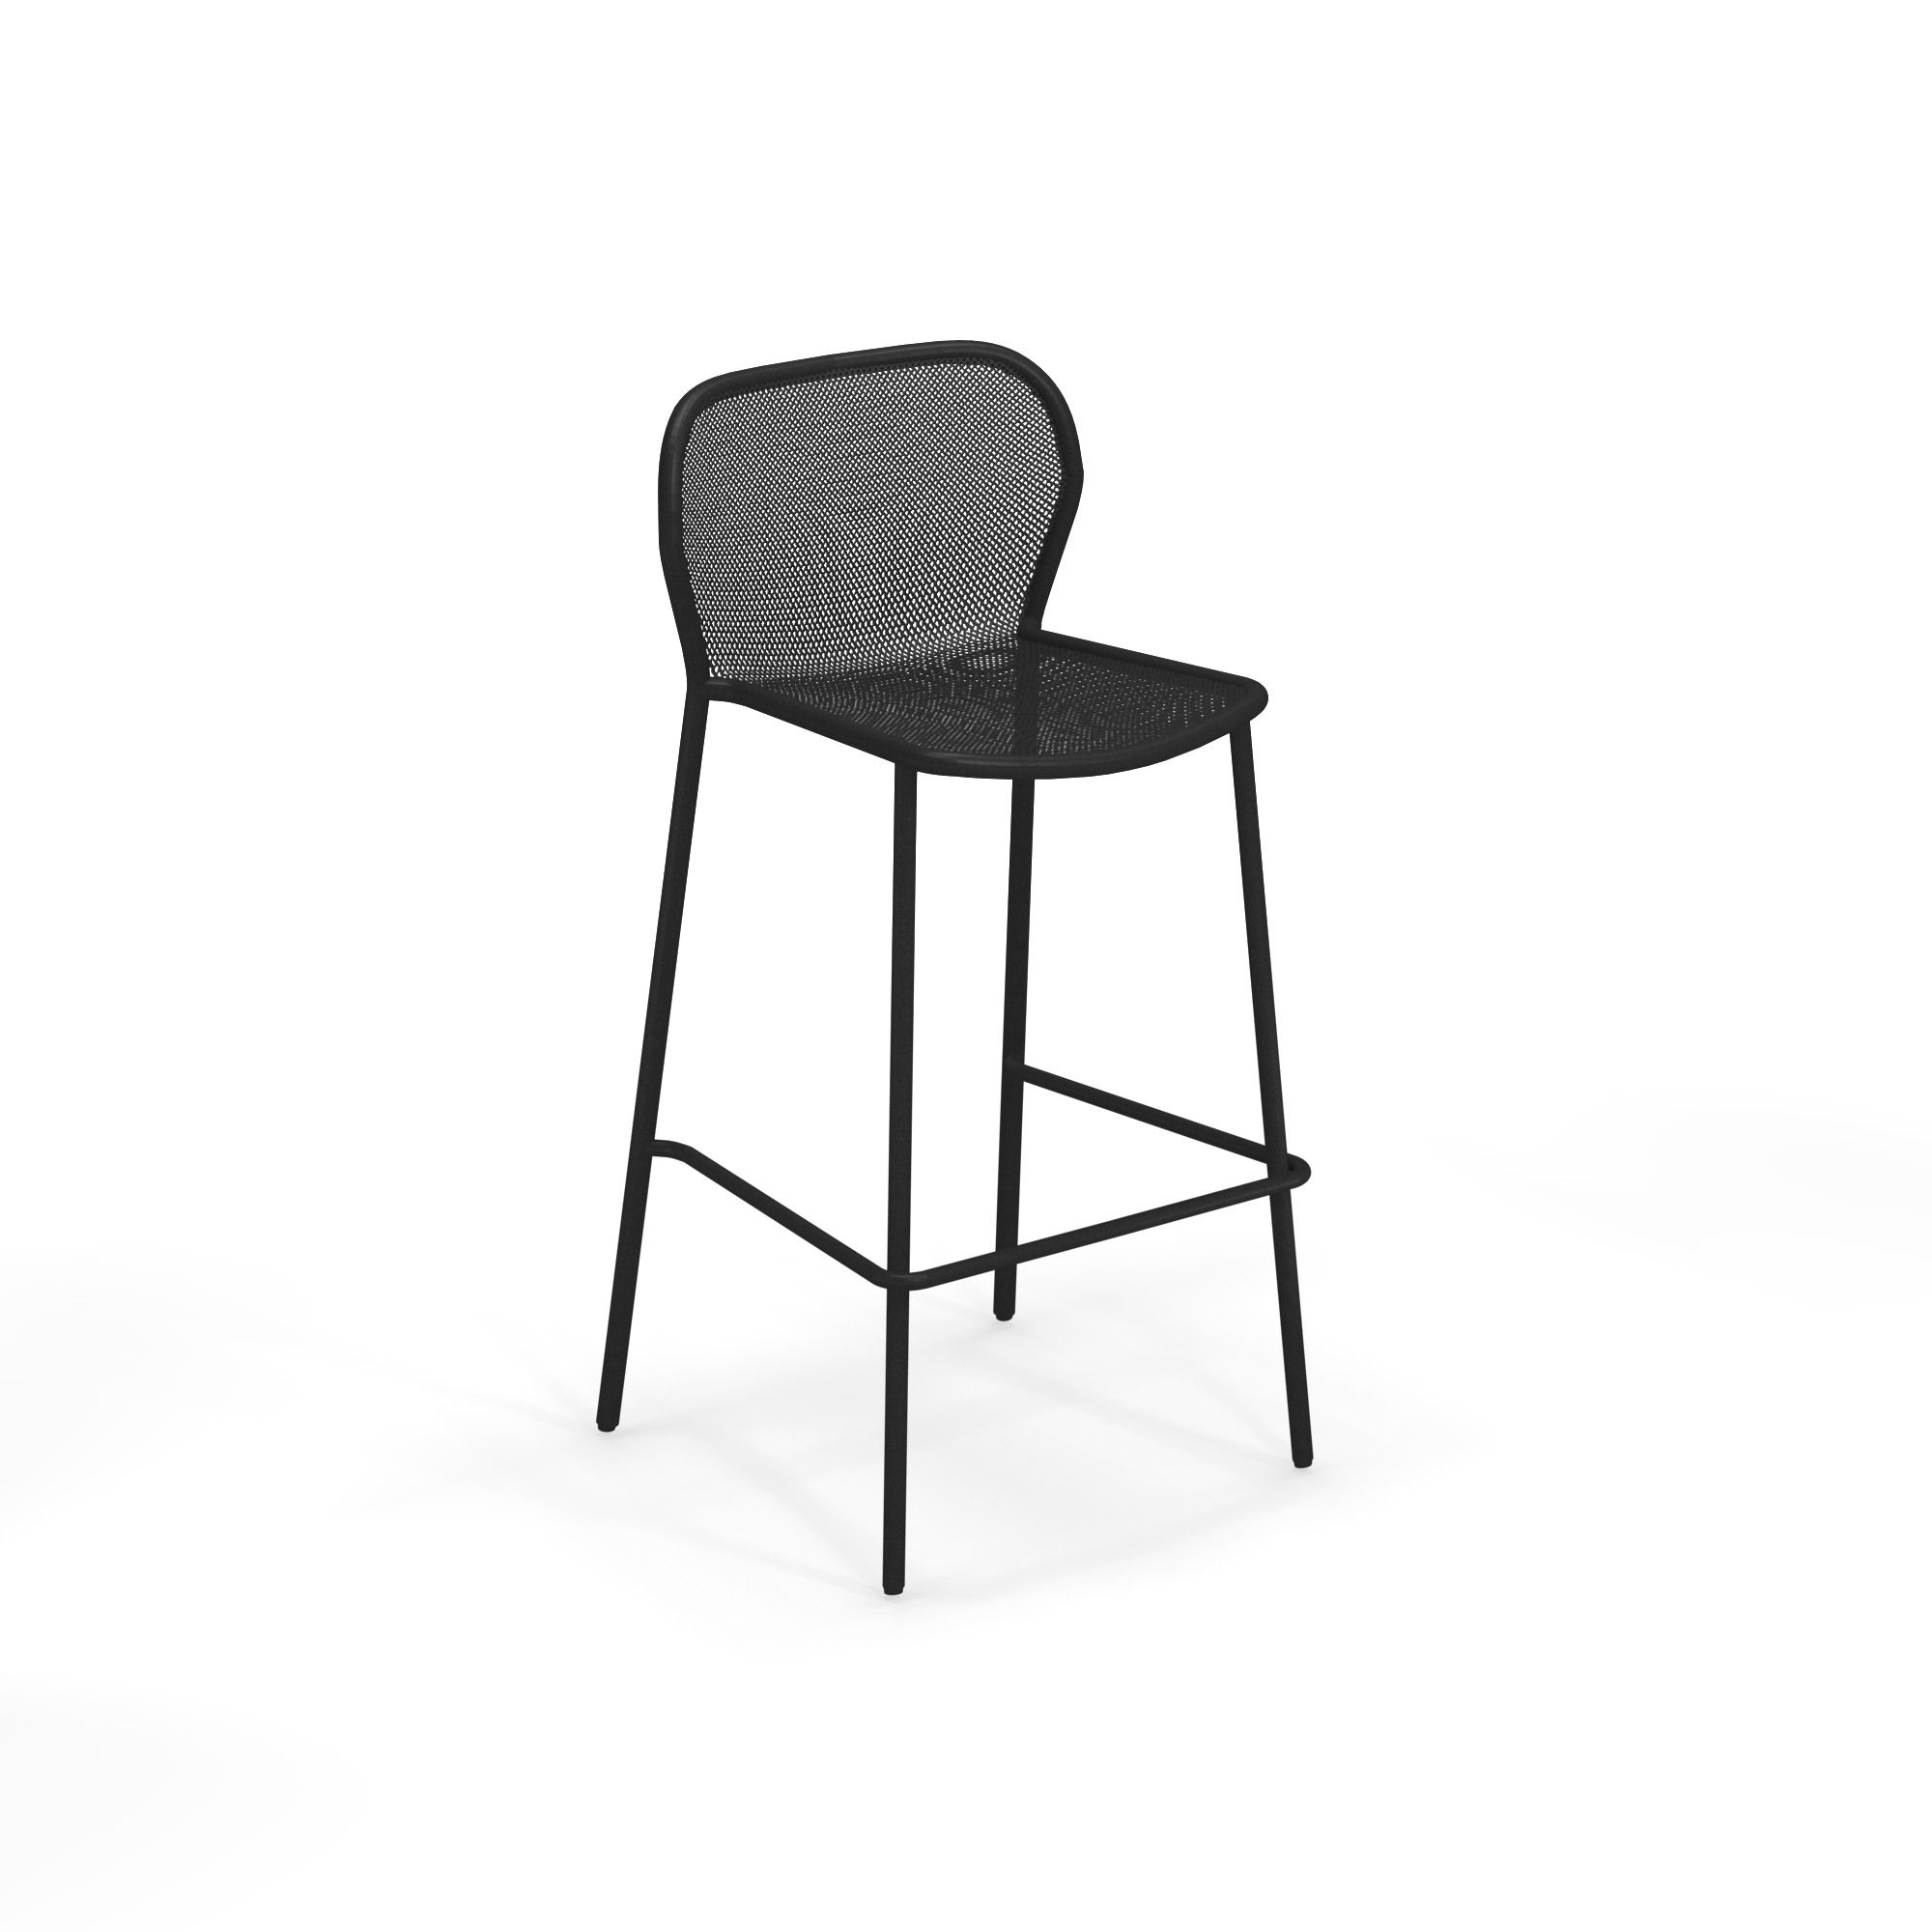 emuamericas, llc 523-24 bar stool, stacking, outdoor